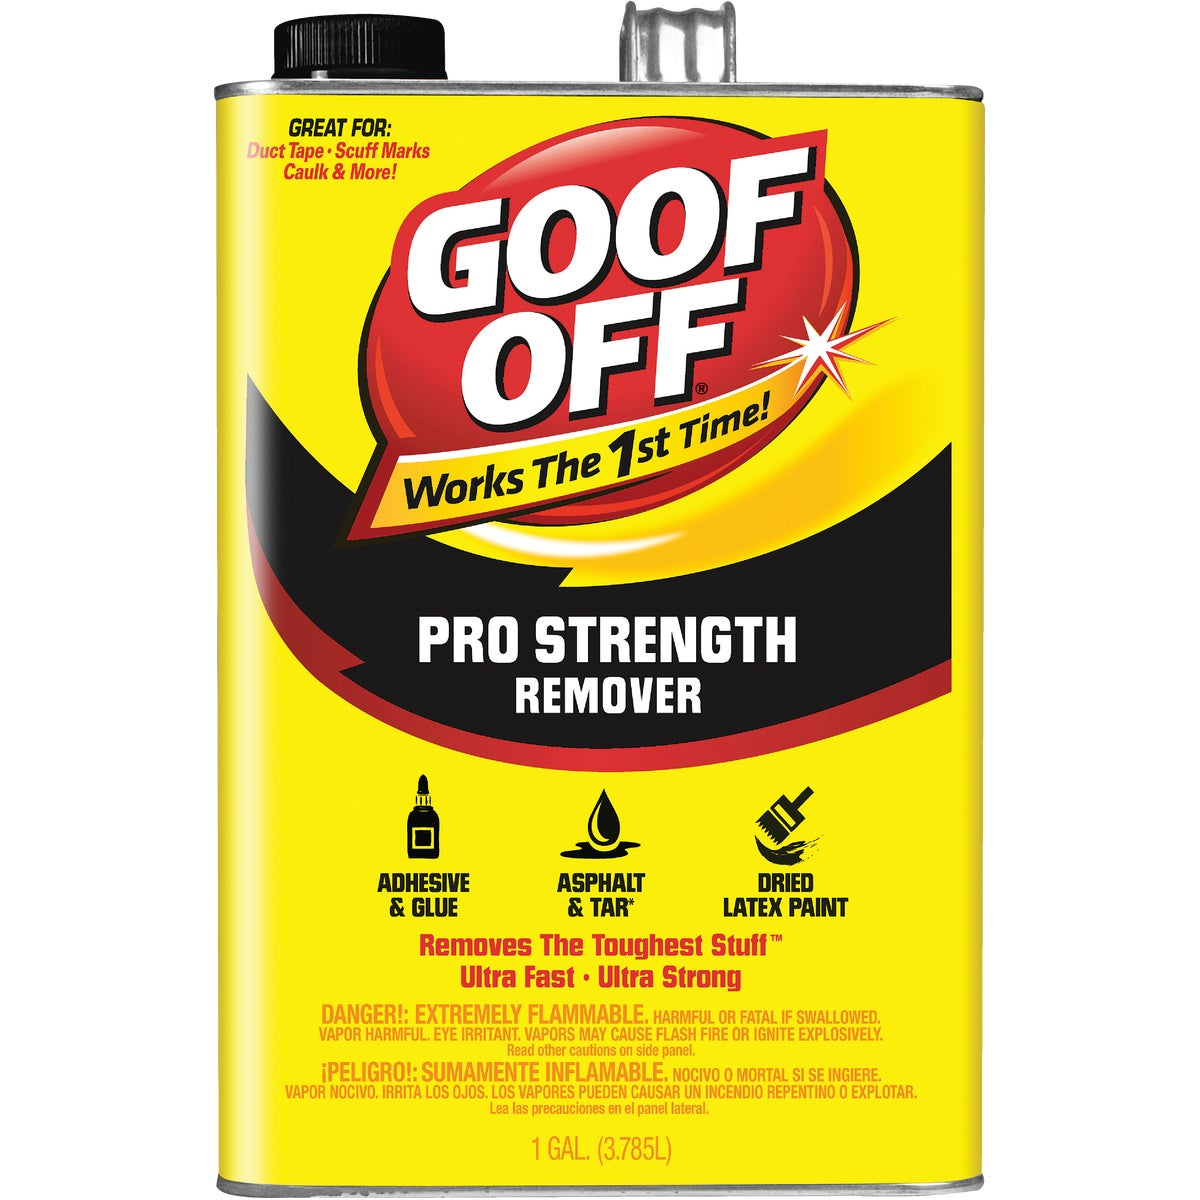 GAL GOOF OFF REMOVER - FG657 by Wm Barr